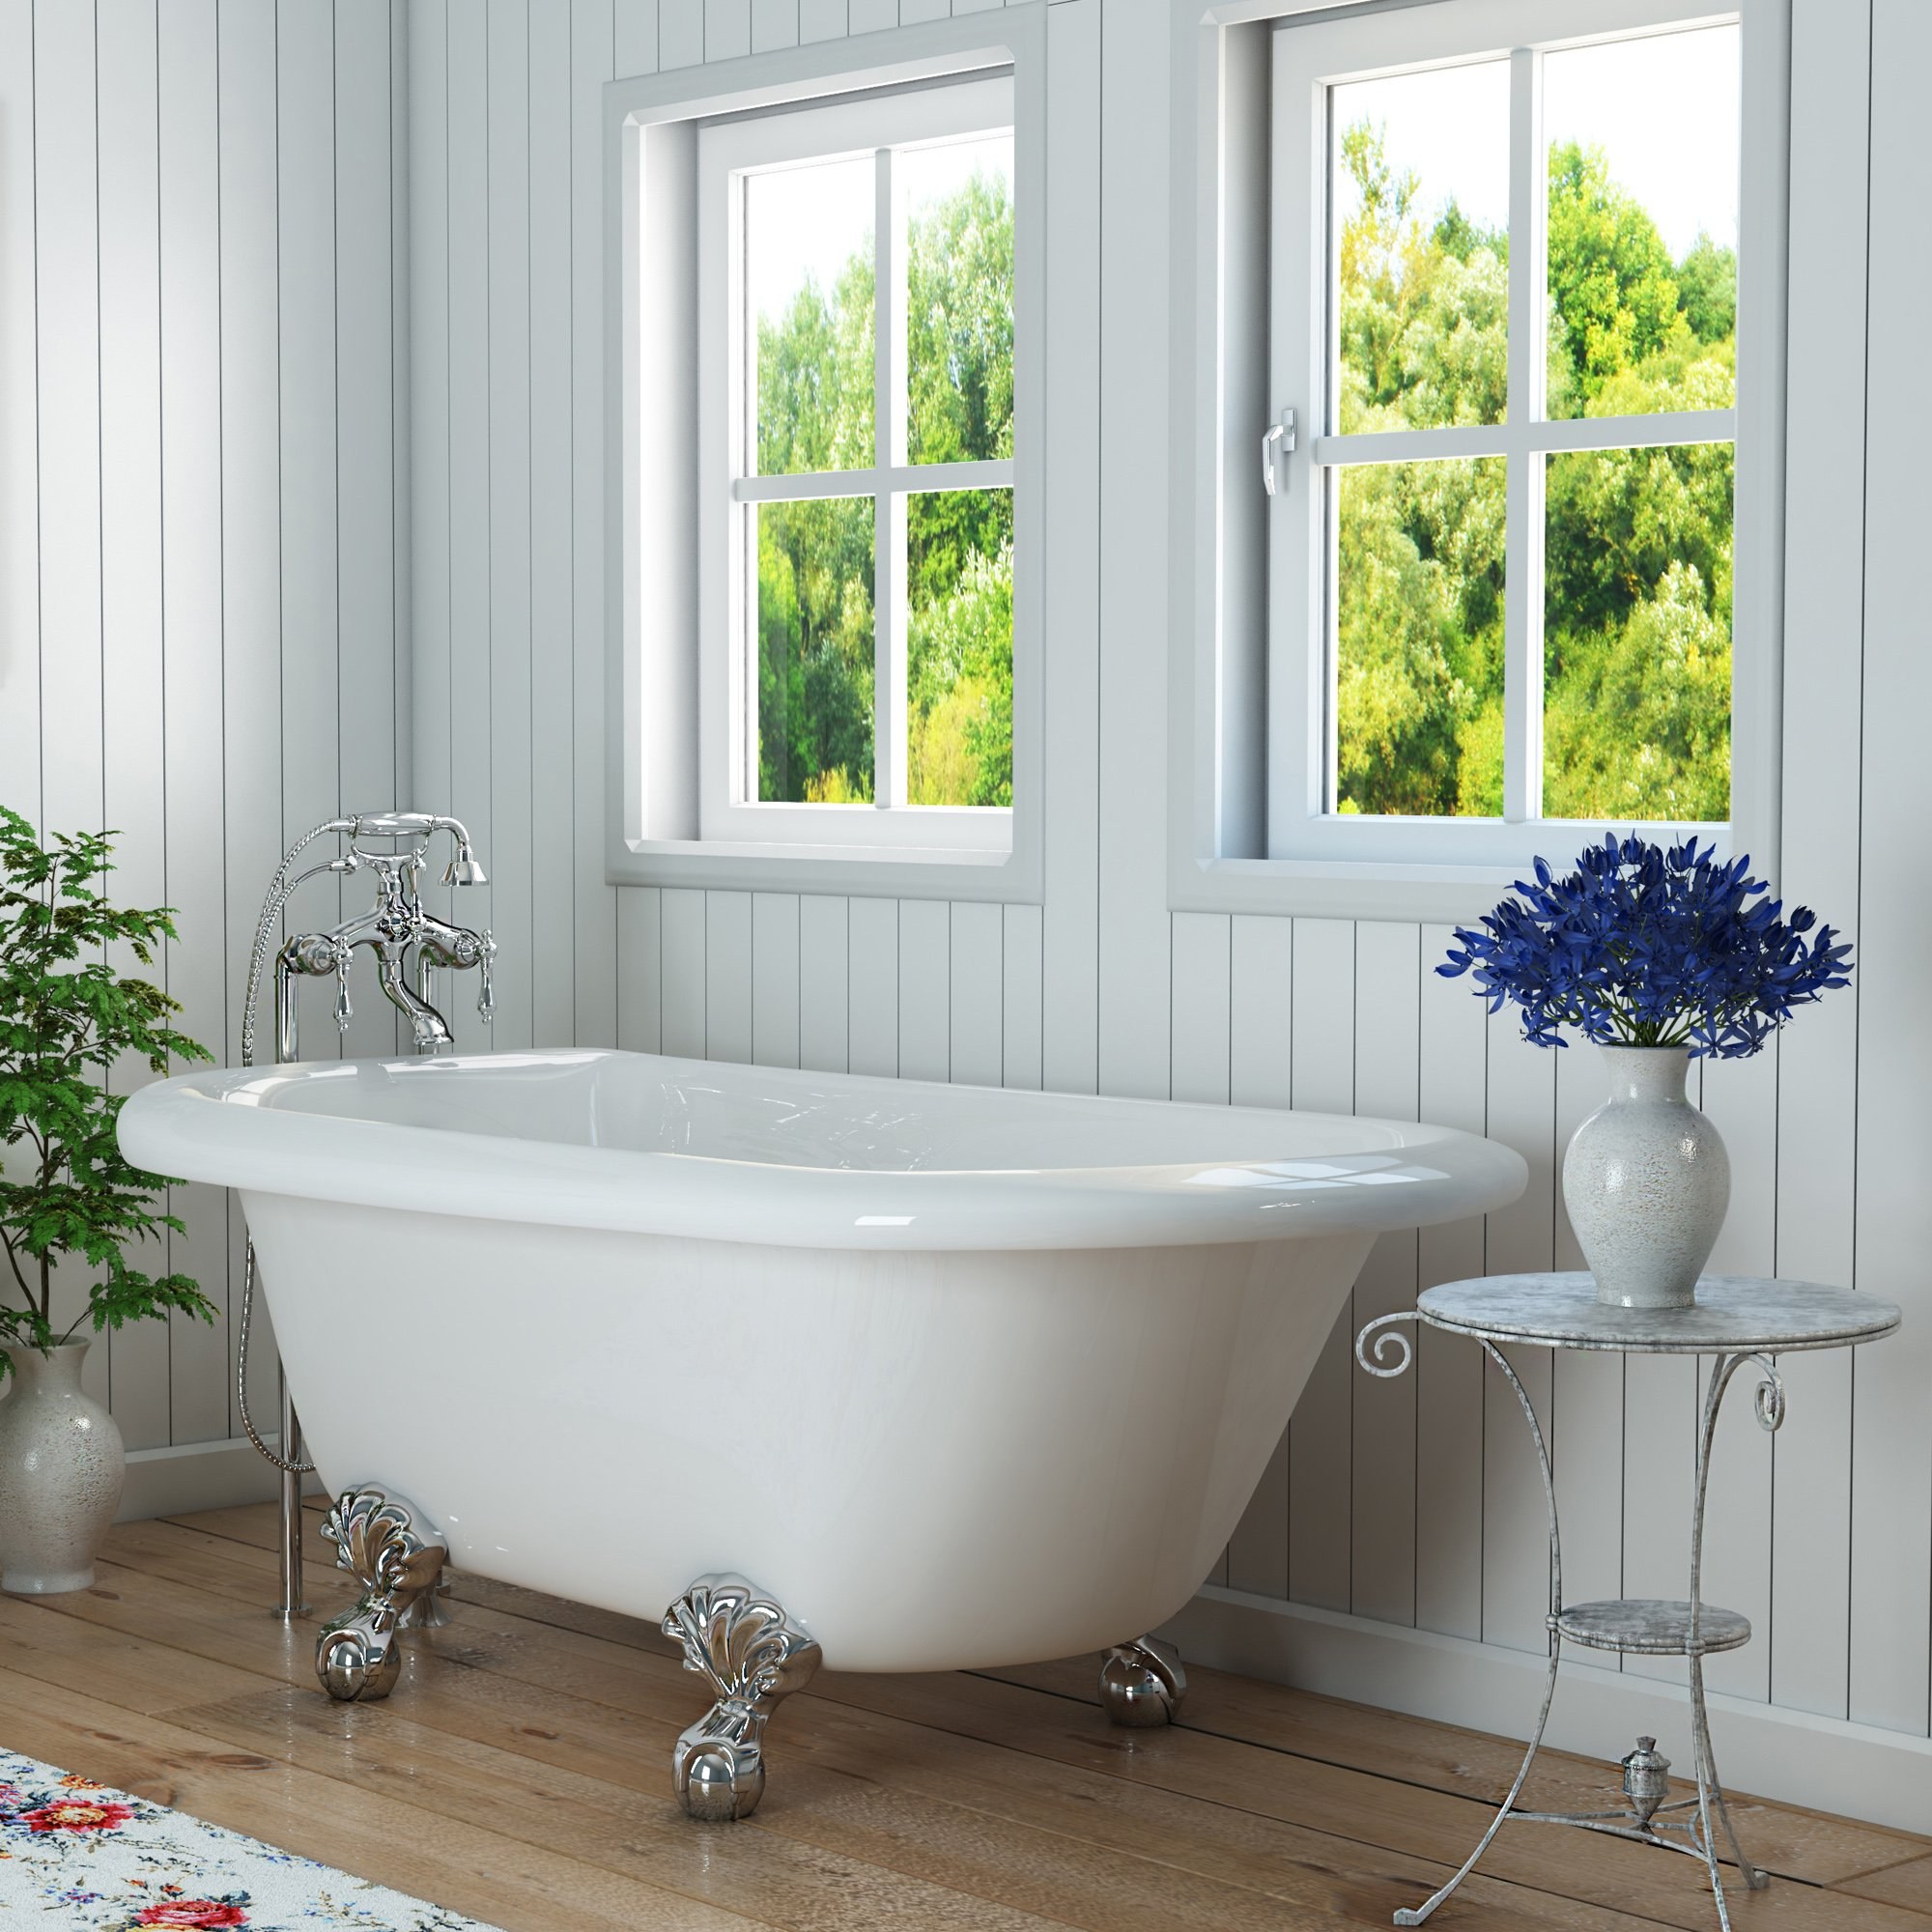 Luxury 54 inch Small Clawfoot Tub with Vintage Tub Design in White, includes Polished Chrome Ball and Claw Feet and Drain, from The Highview Collection by Pelham & White